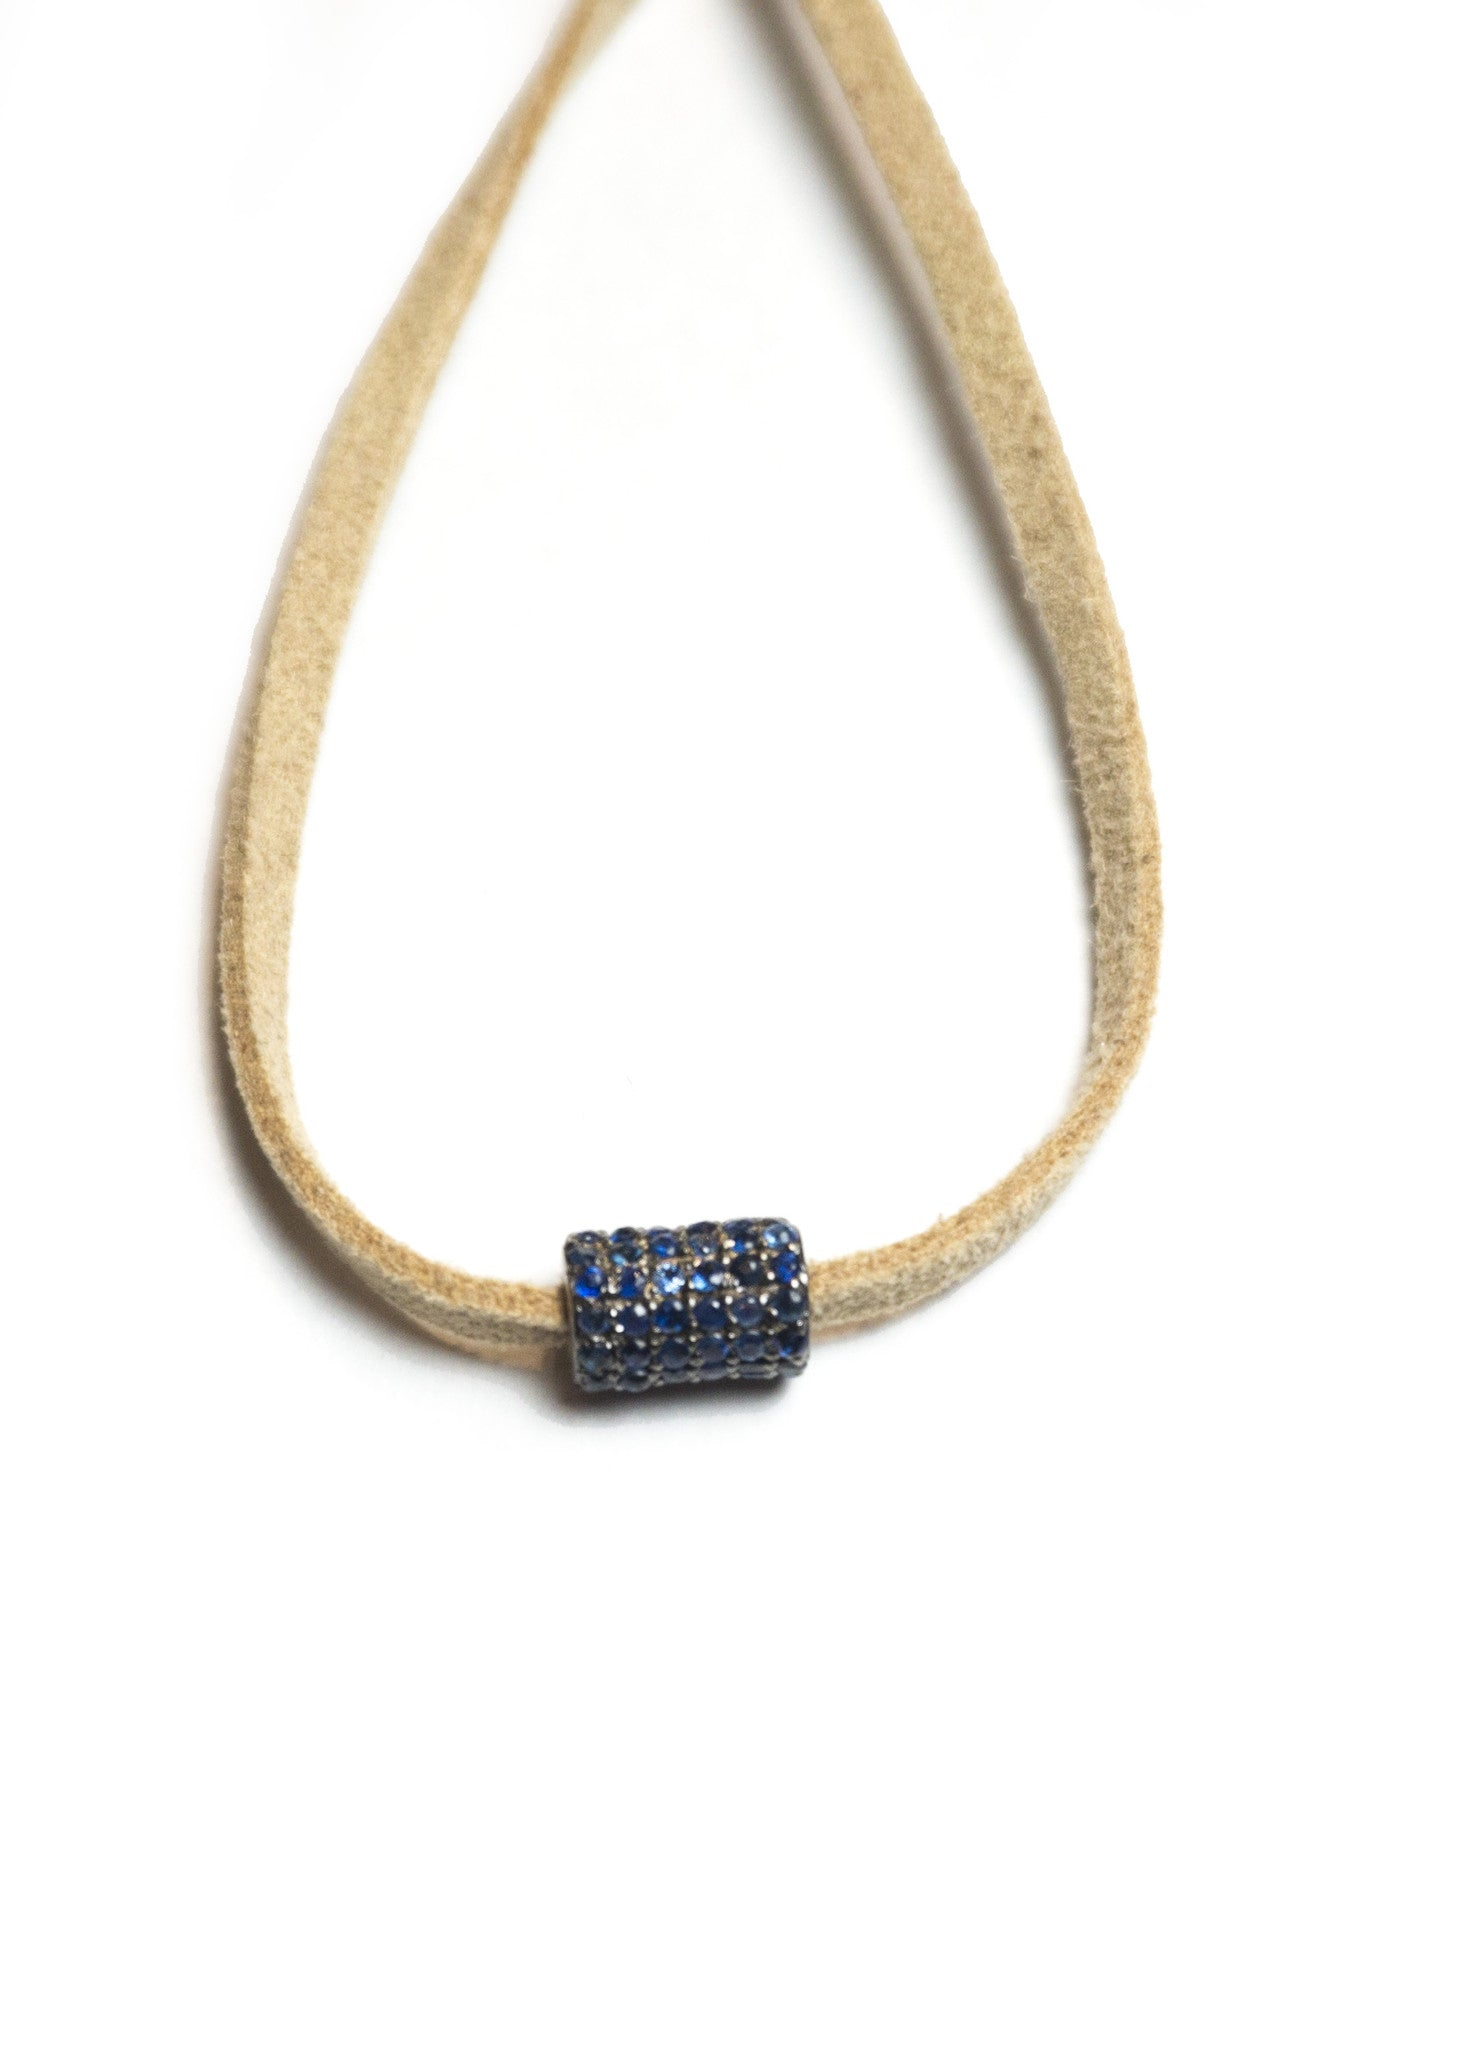 Lera Jewels small sapphire cylinder on tan suede wrap